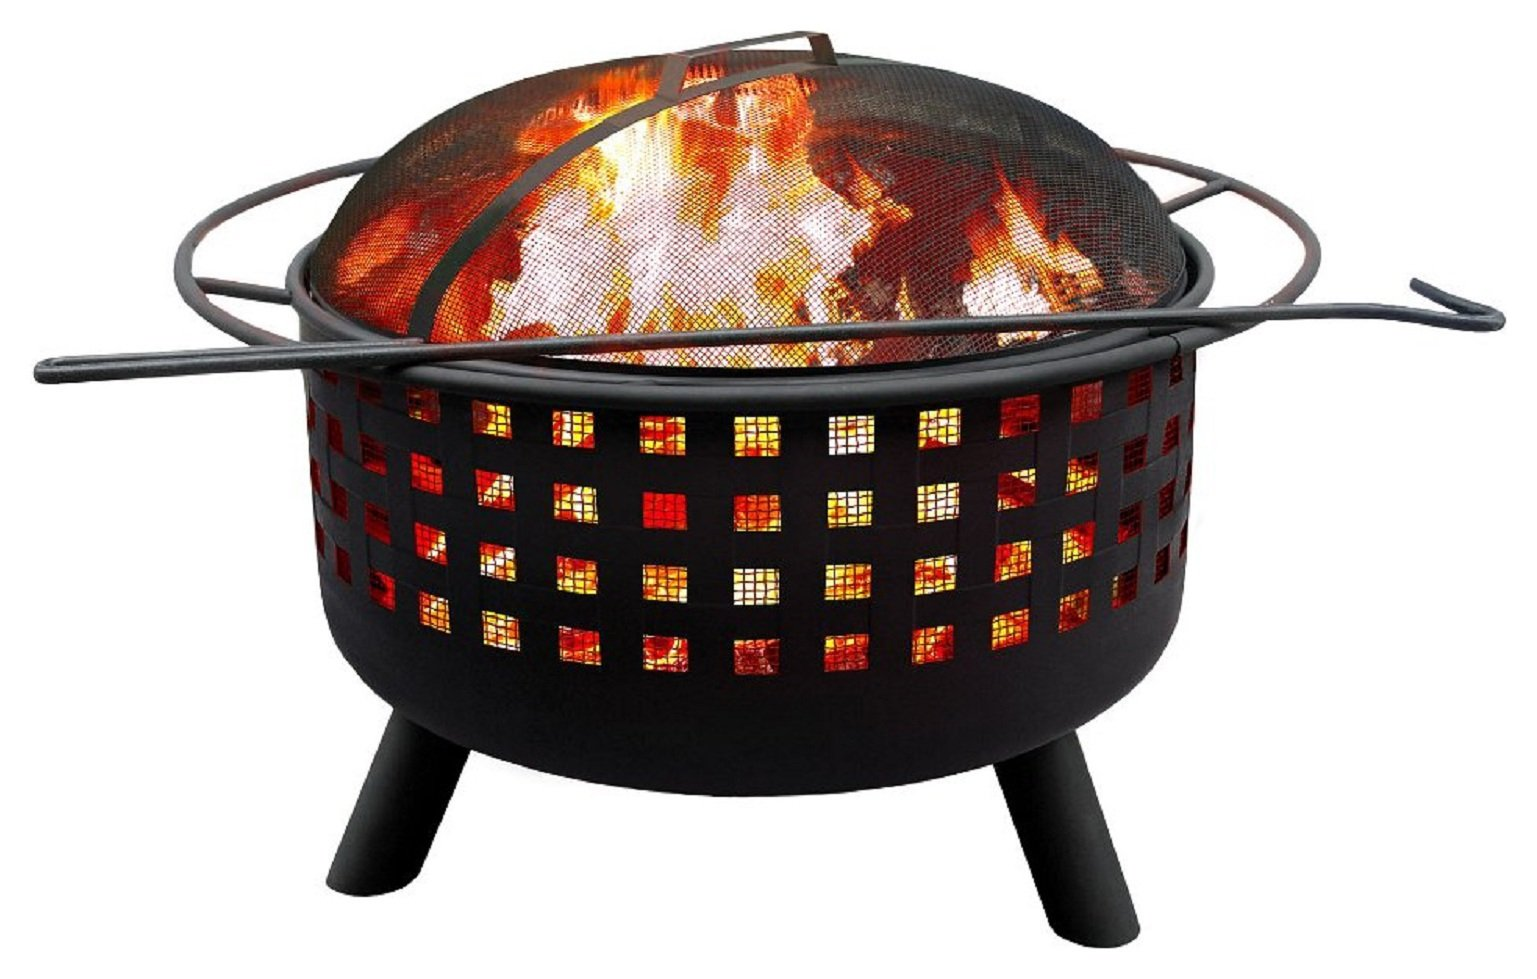 fire pits page 1 argos price tracker. Black Bedroom Furniture Sets. Home Design Ideas